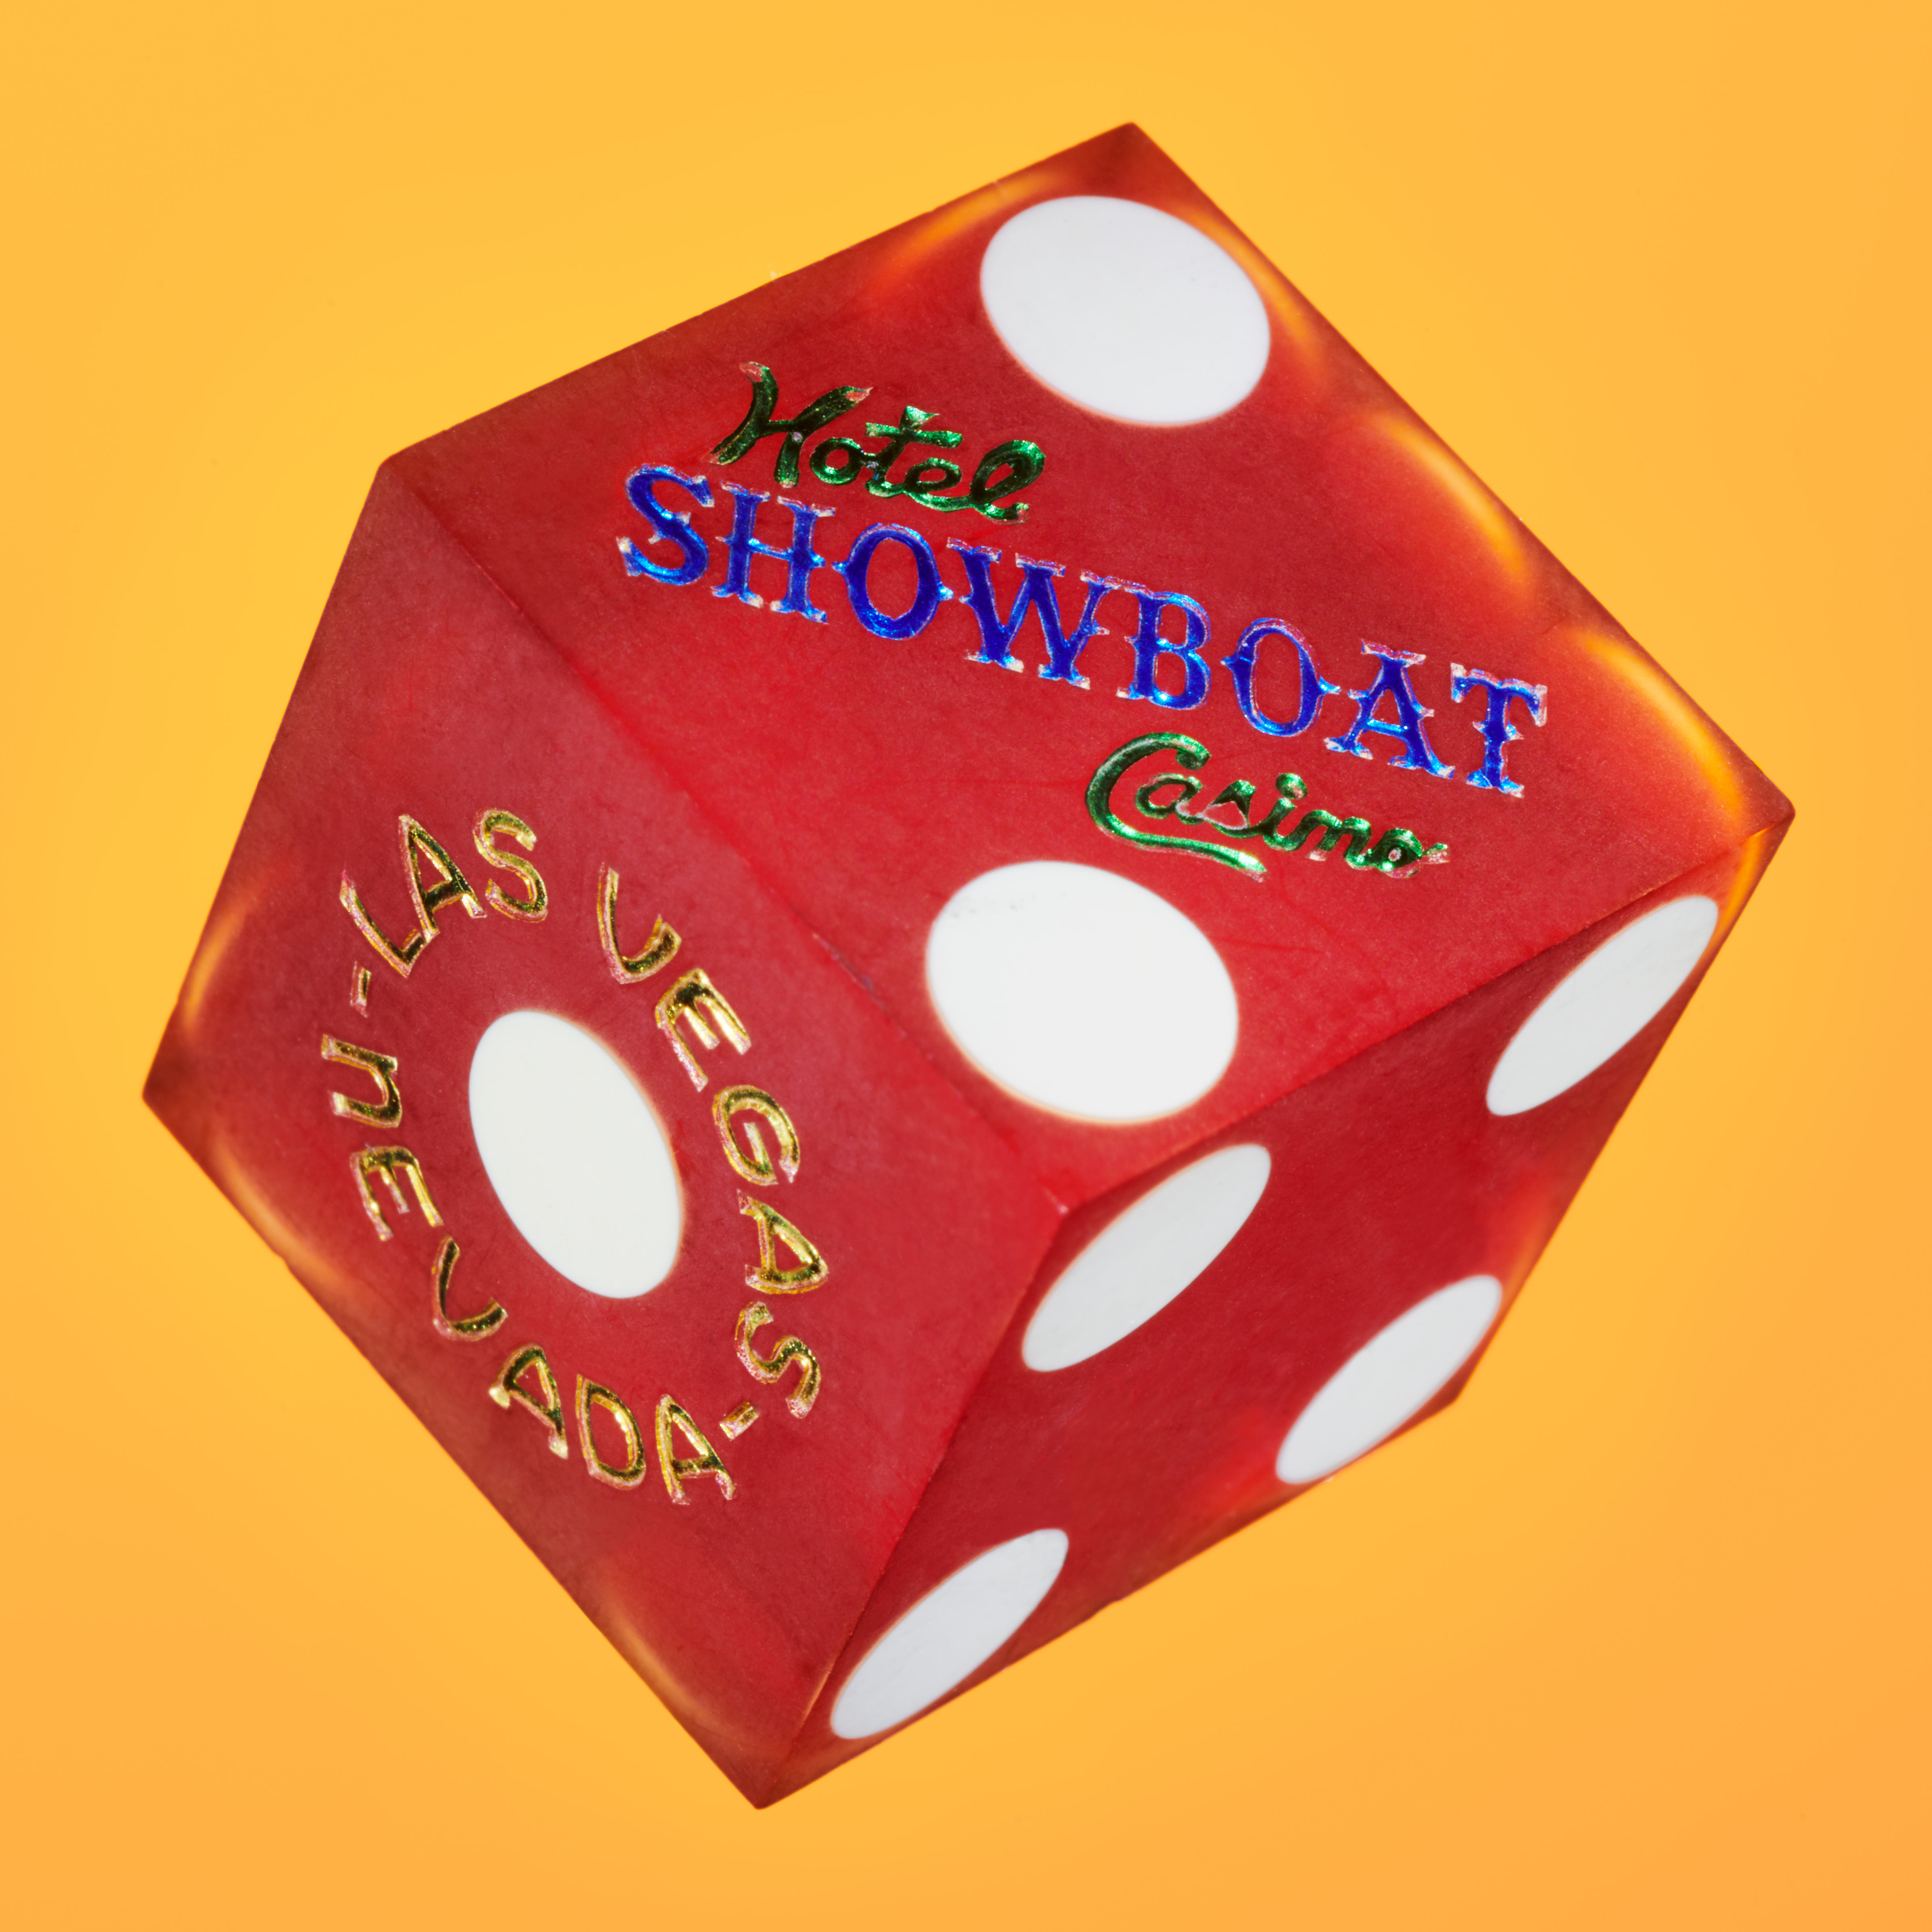 Showboat_Casino_Hotel_SFW